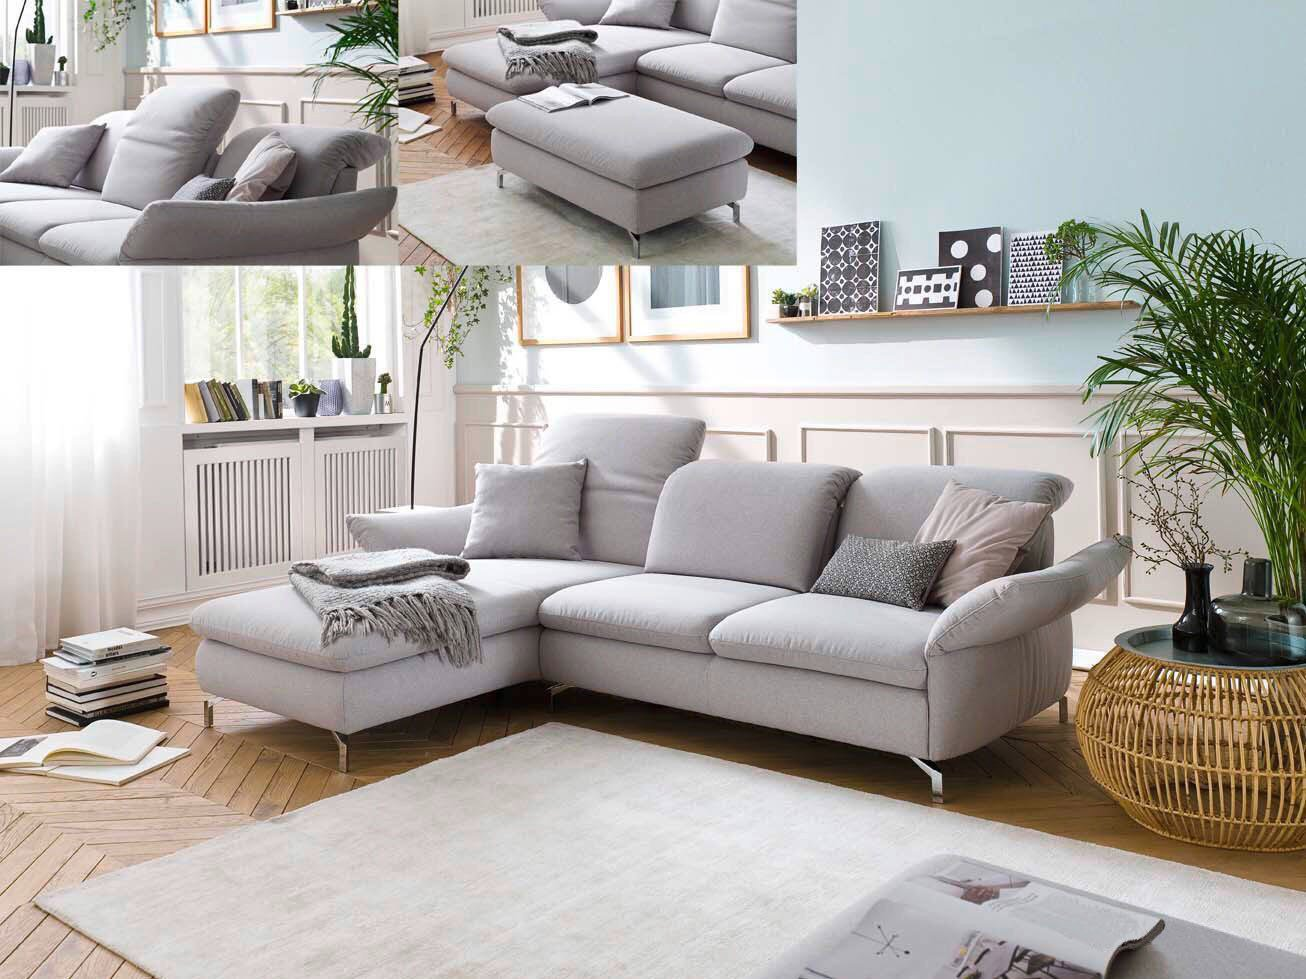 Candy Homely Ecksofa in Anthrazit | Möbel Letz - Ihr Online-Shop